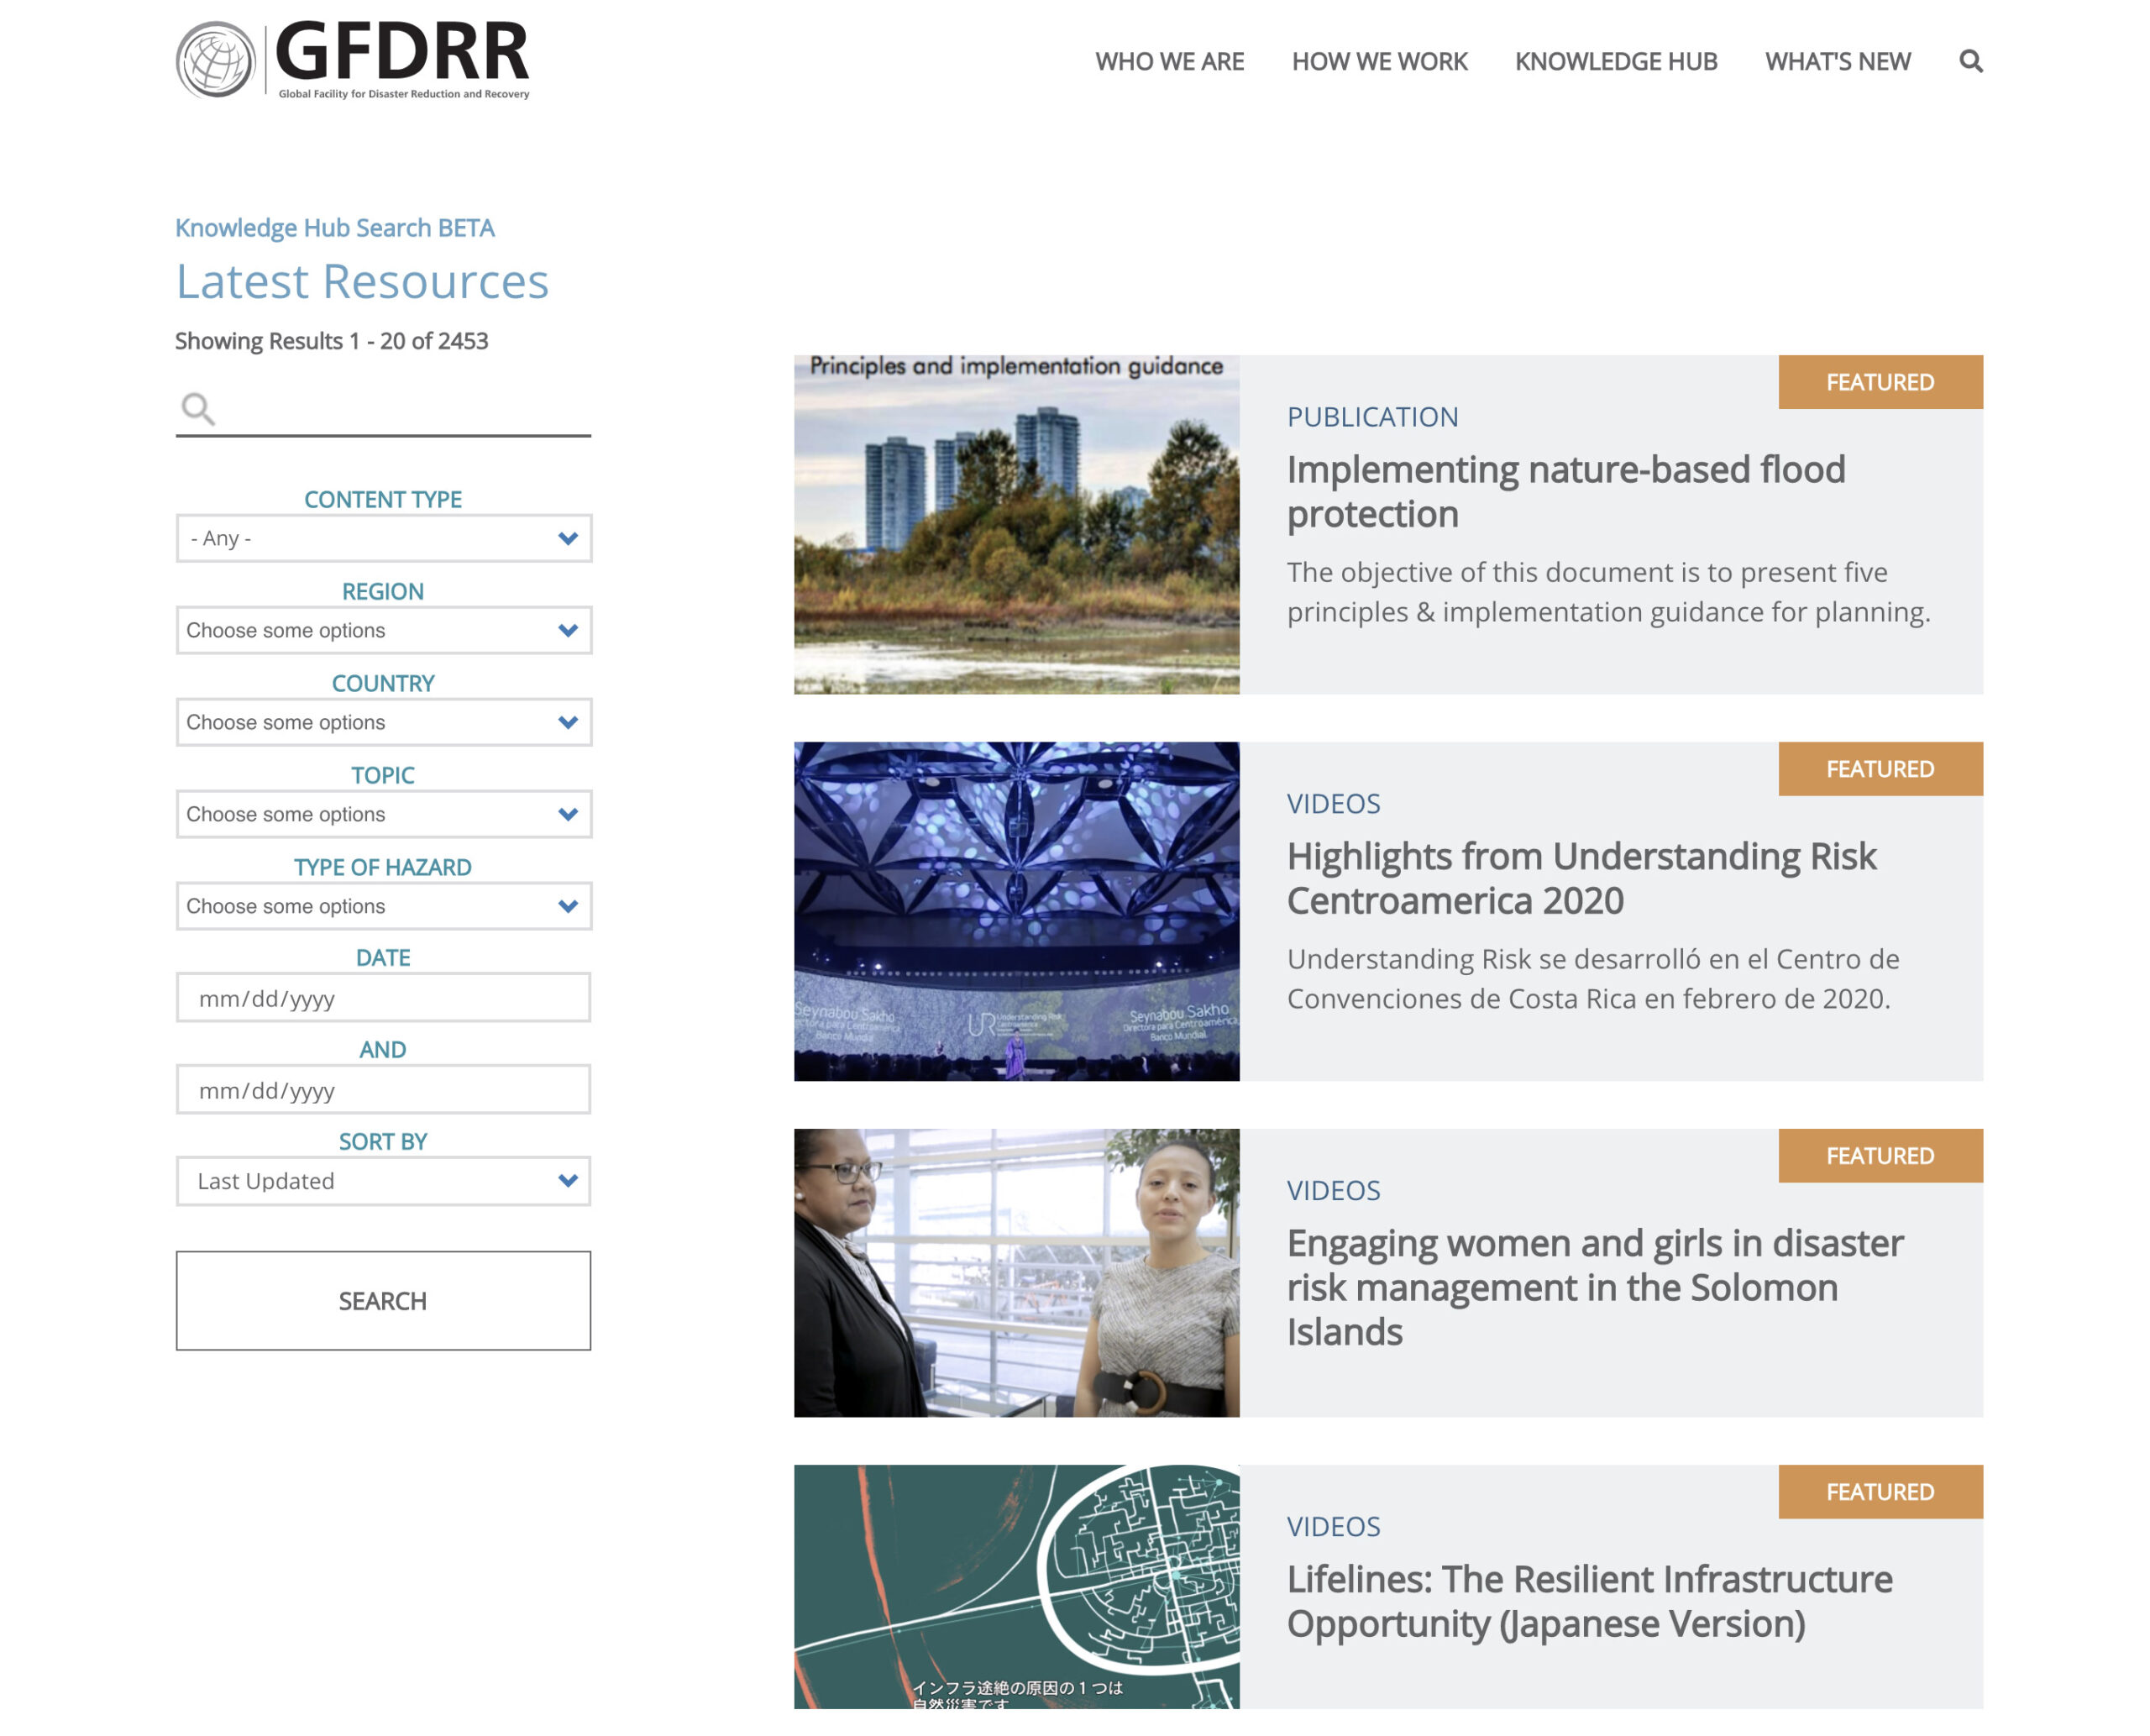 Knowledge Hub search results page on GFDRR website